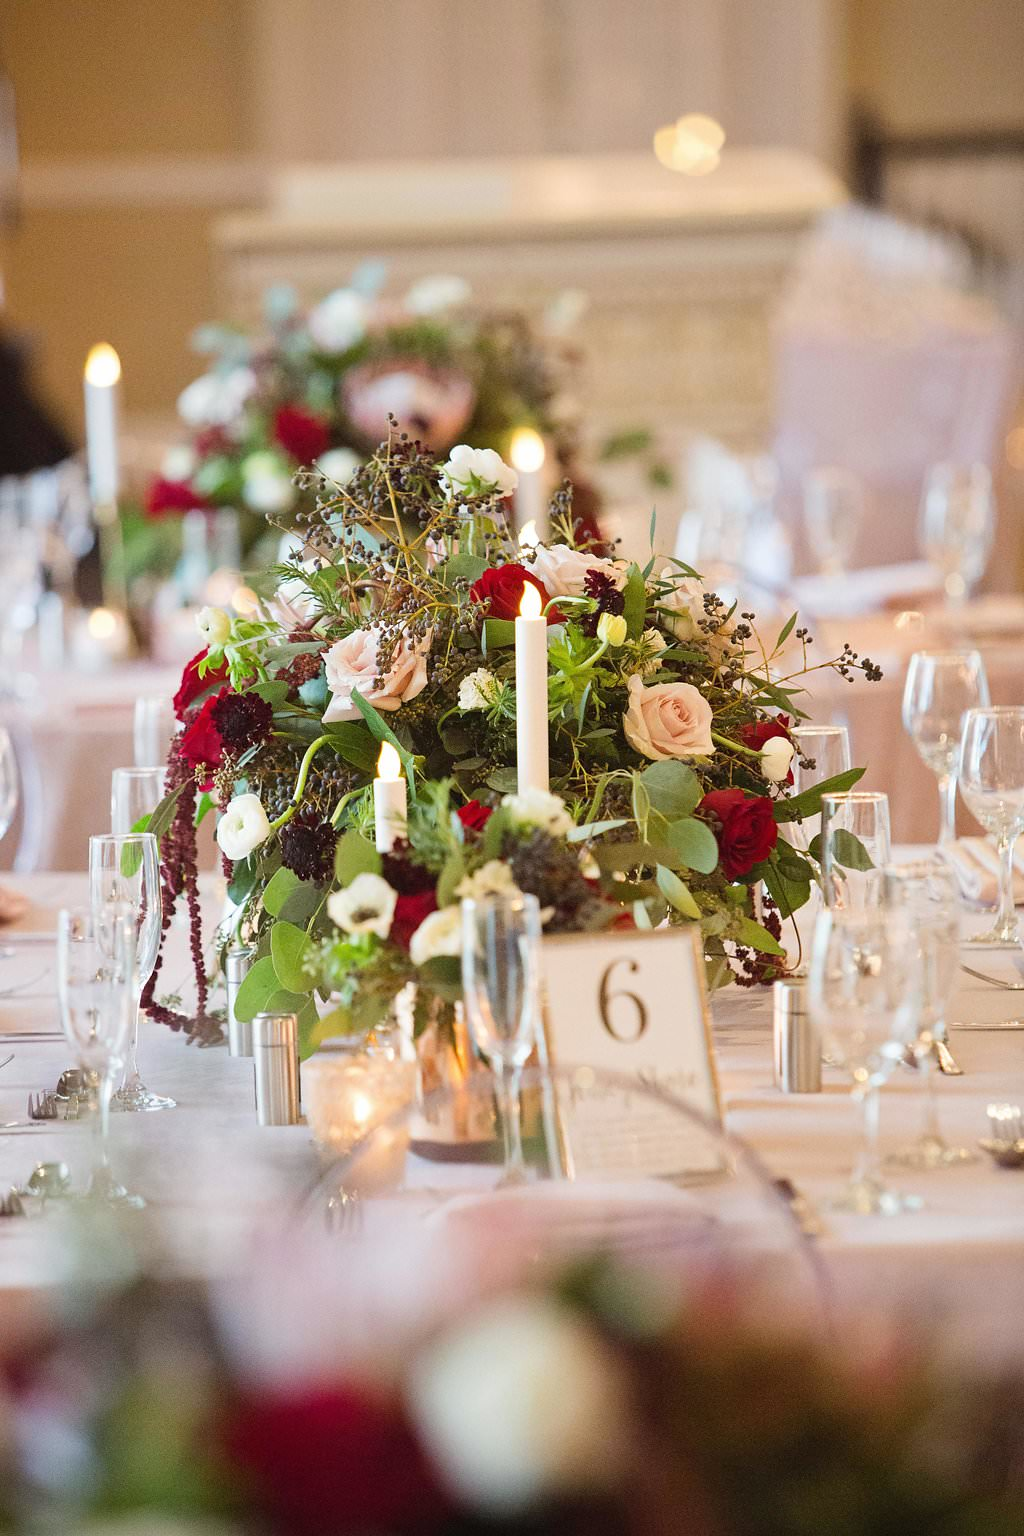 Modern Winter Pink and Burgundy Hotel Ballroom Wedding Reception with Low Red, Blush and Burgundy Floral with Greenery Centerpiece, Blush Linen from Rental Company Over the Top, and Candles | St Petersburg Wedding Planner Parties A La Carte |